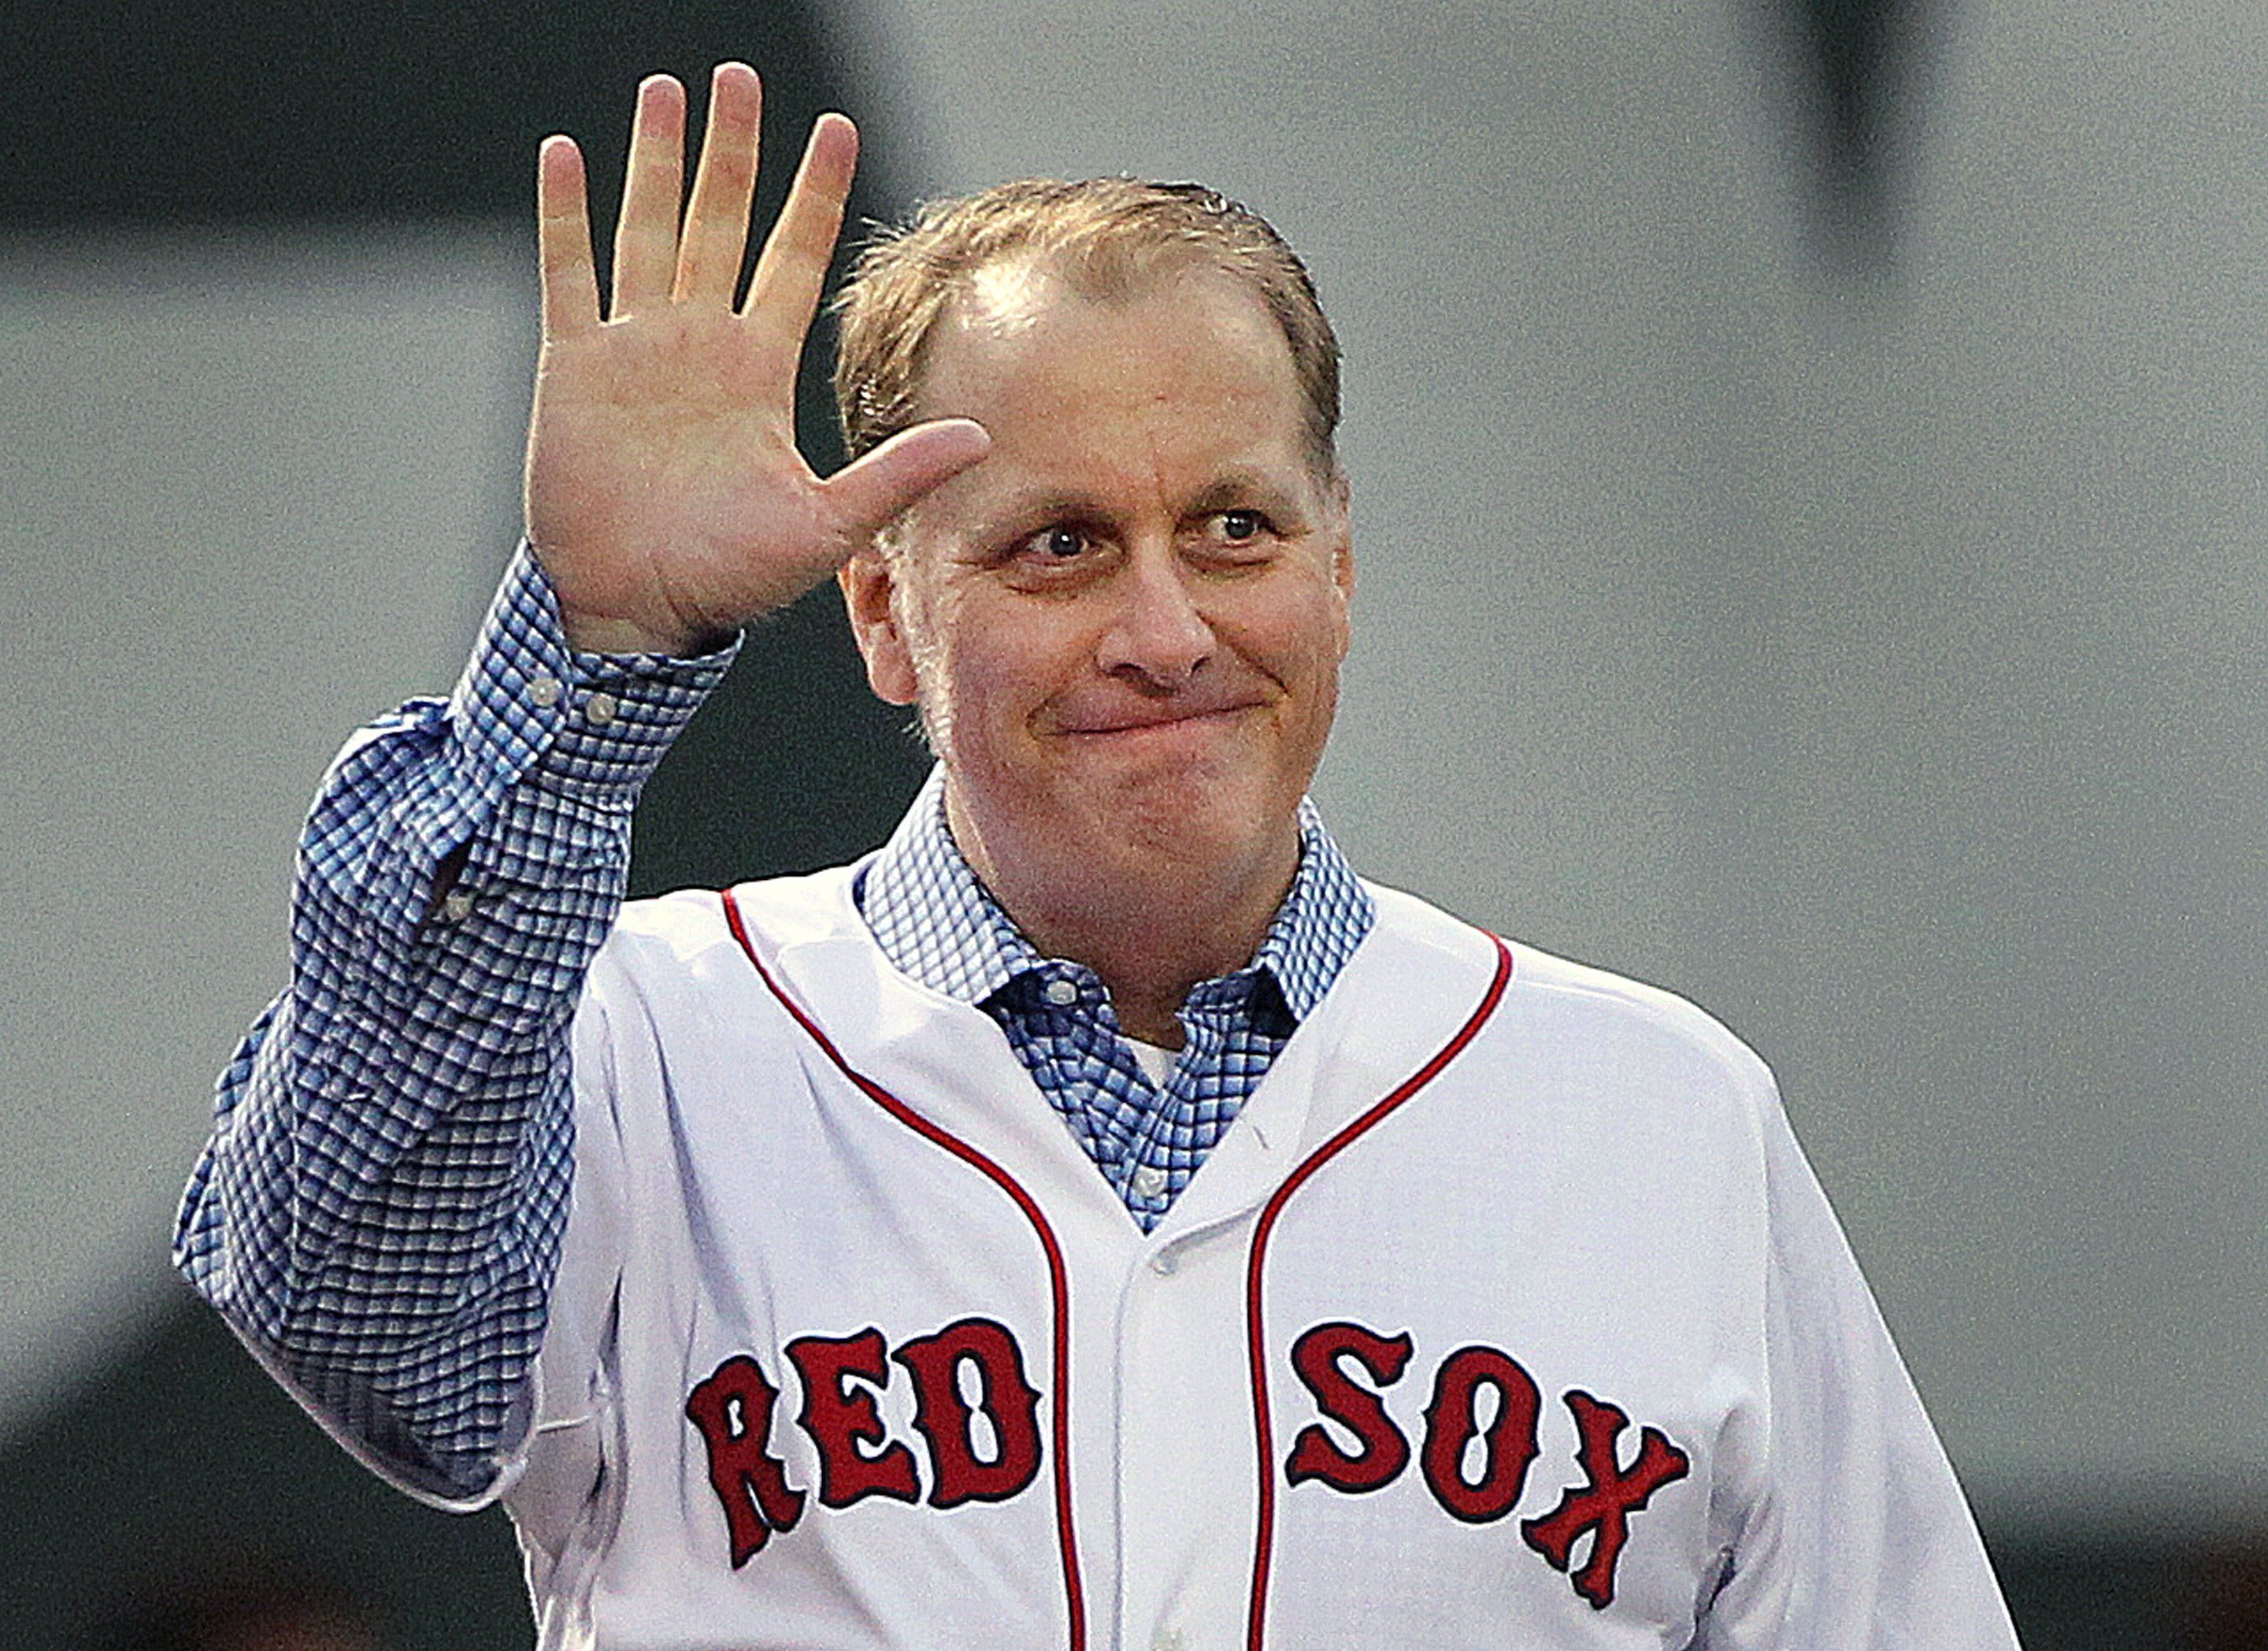 BOSTON - MAY 28: Before the game, the Red Sox honored the tenth anniversary of the 2004 World Series Championship team. Pitcher Curt Schilling, who is battling cancer acknowledges the cheers of the crowd as he walks in from left field. The Boston Red Sox hosted the Atlanta Braves in an interleague MLB game at Fenway Park. (Photo by Jim Davis/The Boston Globe via Getty Images)